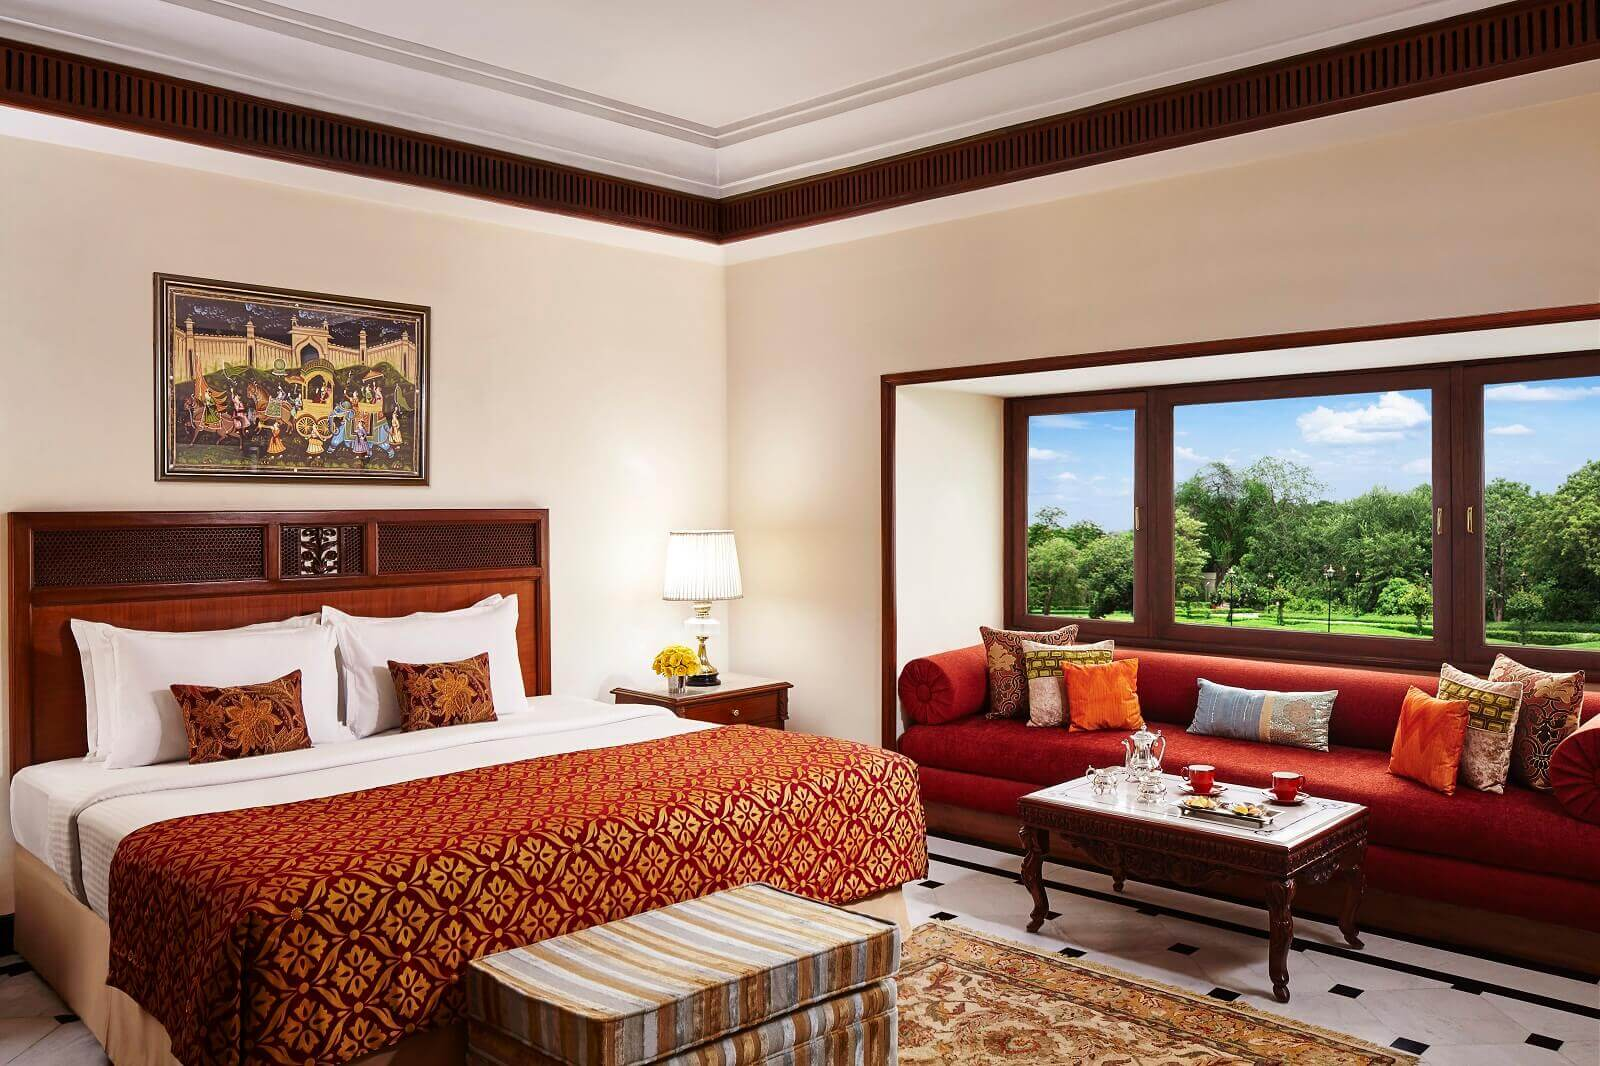 Deluxe Suite at Jai Mahal Palace